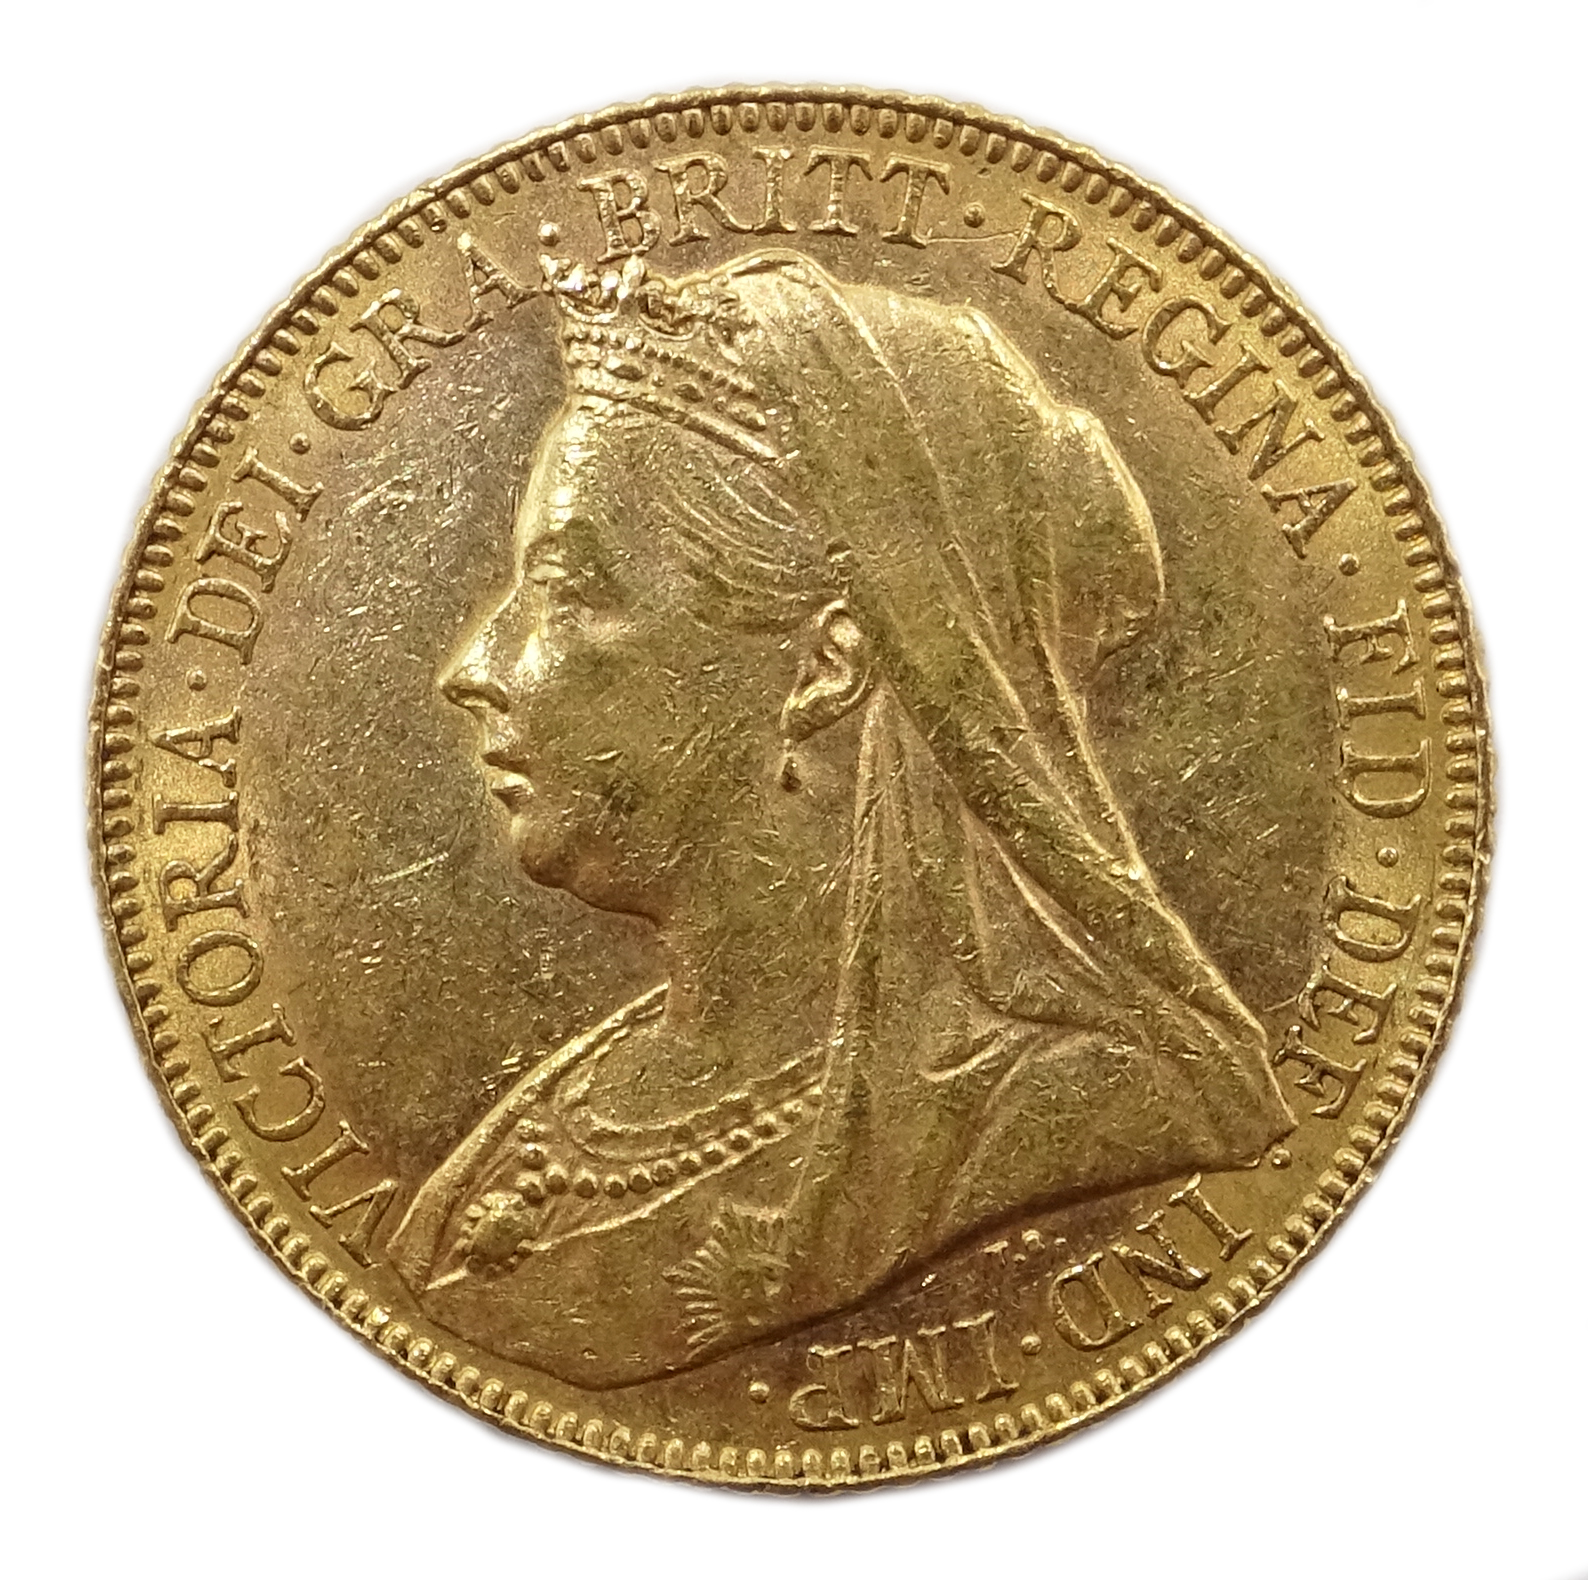 Lot 1049 - 1900 gold full sovereign Condition Report & Further Details <a href='//www.